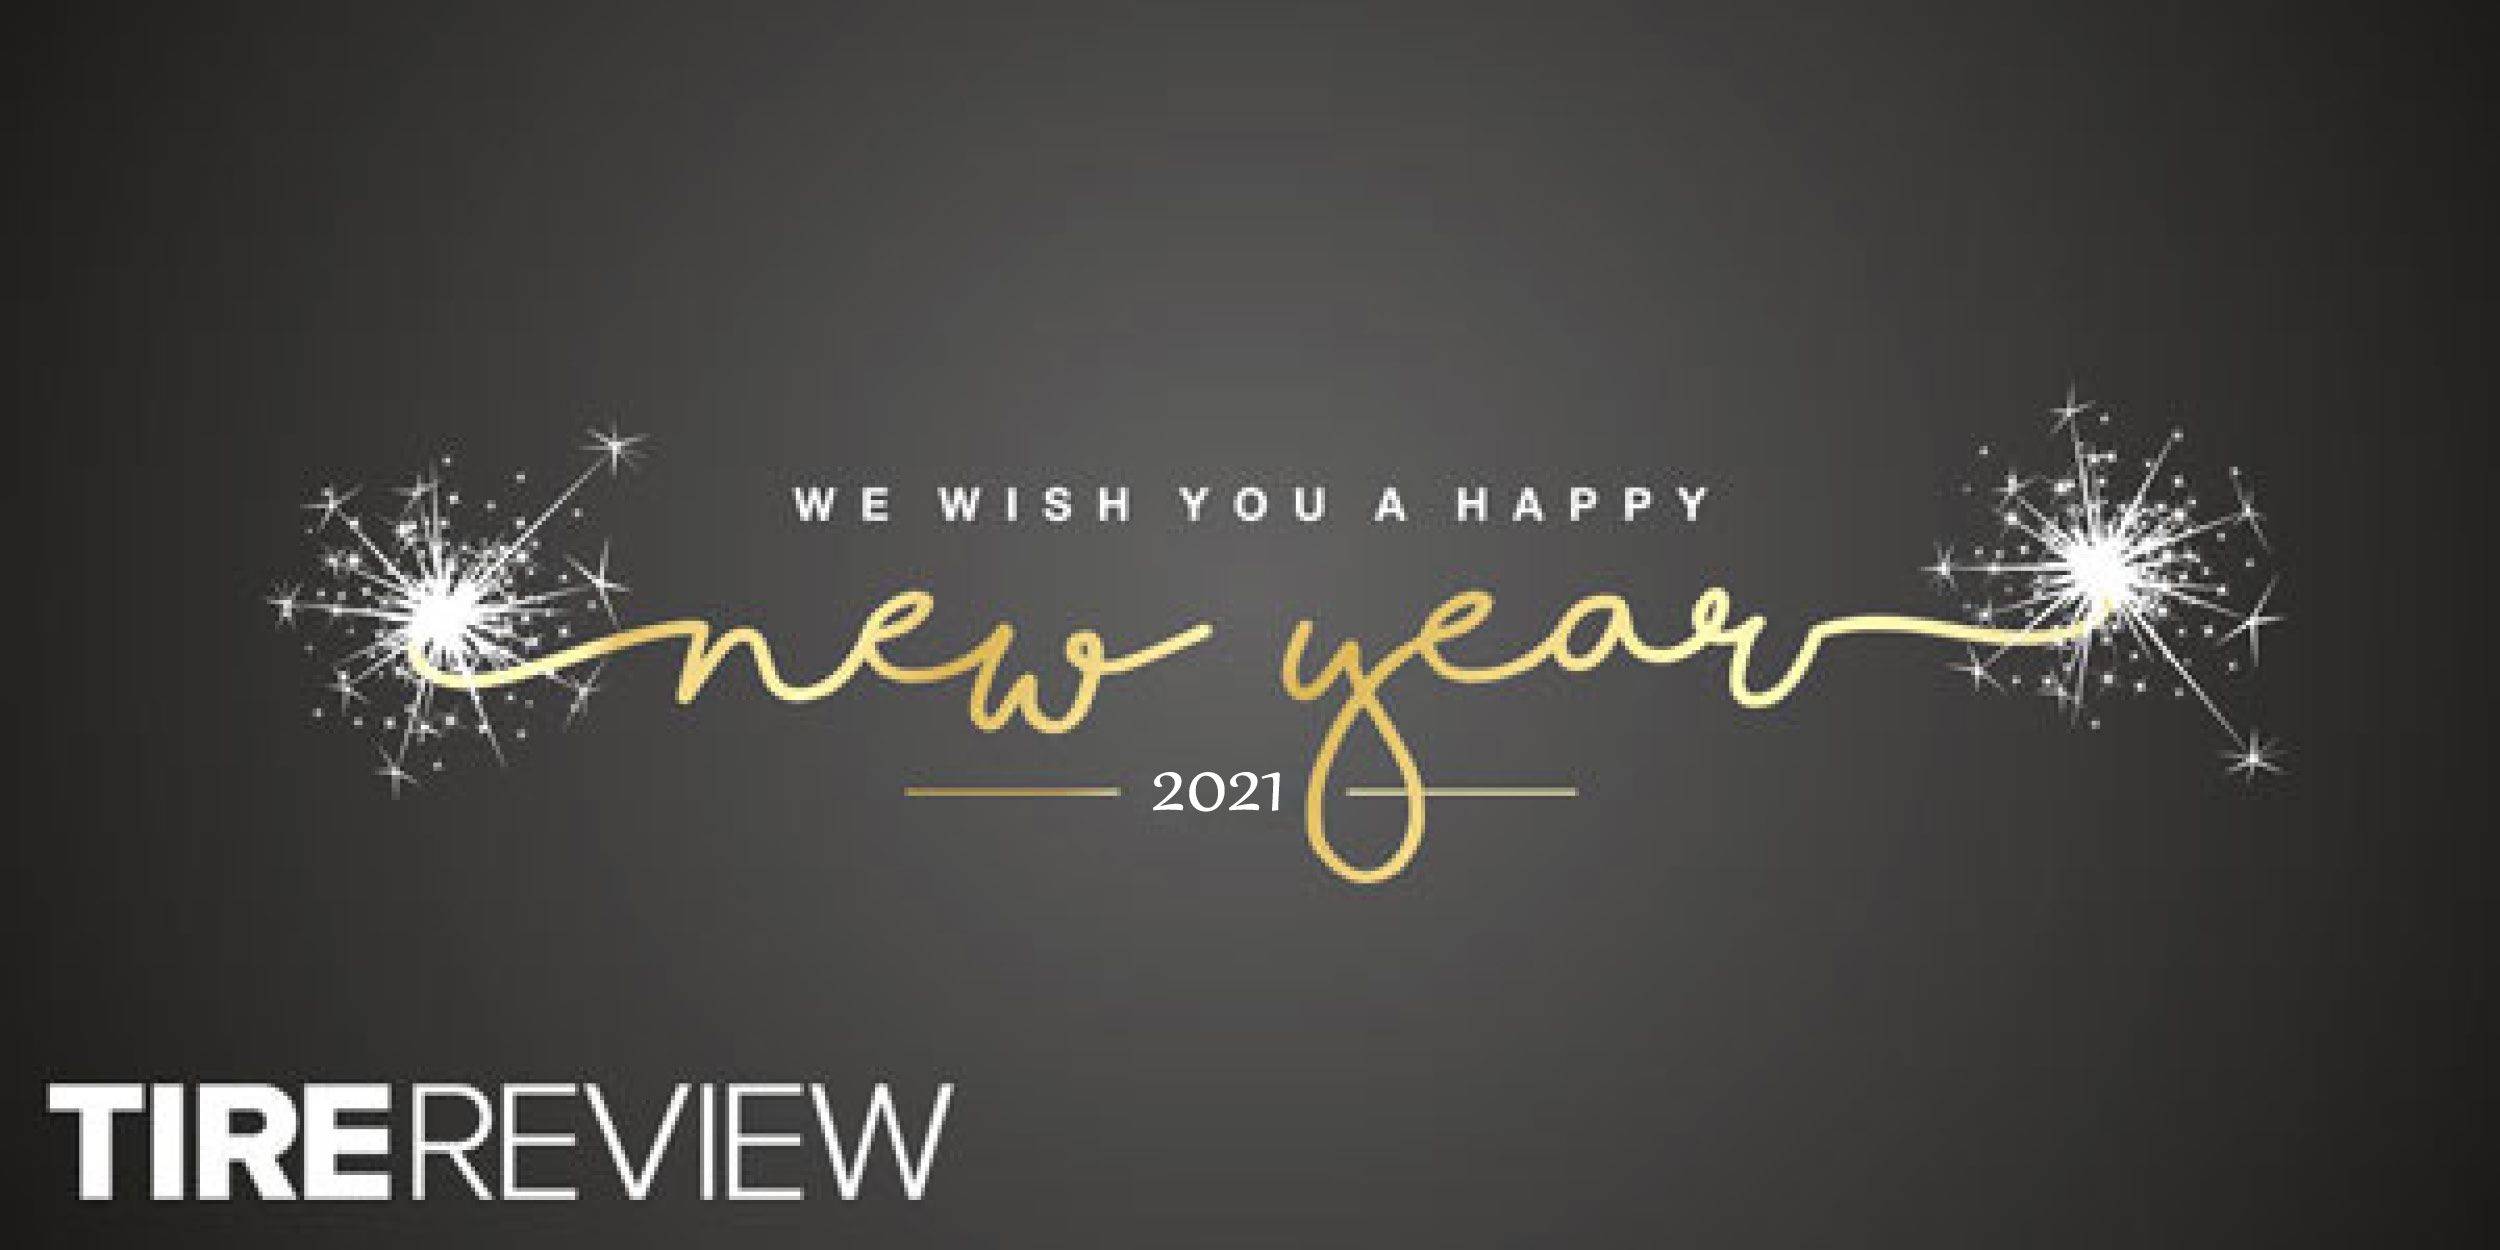 Happy-New-Year-Tire-Review